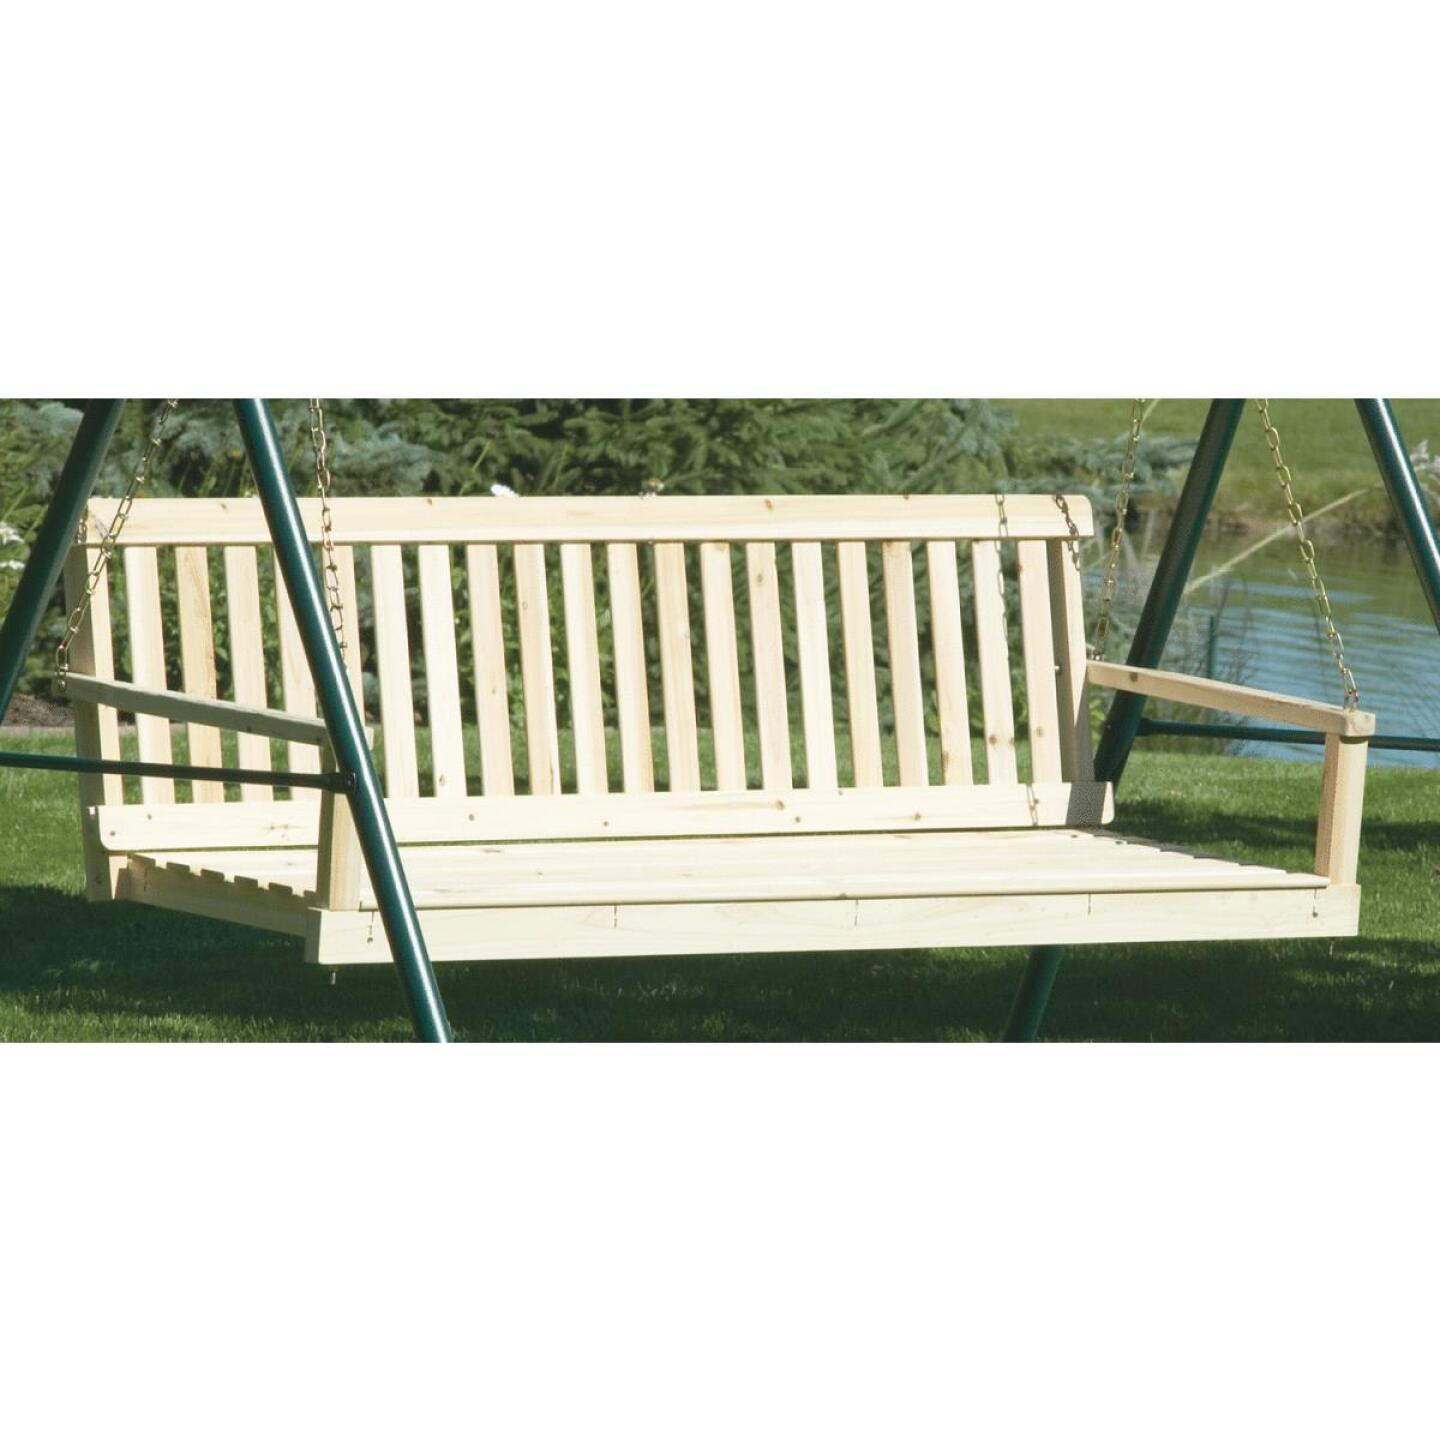 Jack Post Jennings 60 In. W. x 17.5 In. H. x 21-3/4 In. D. Natural Cypress Porch Swing Image 1